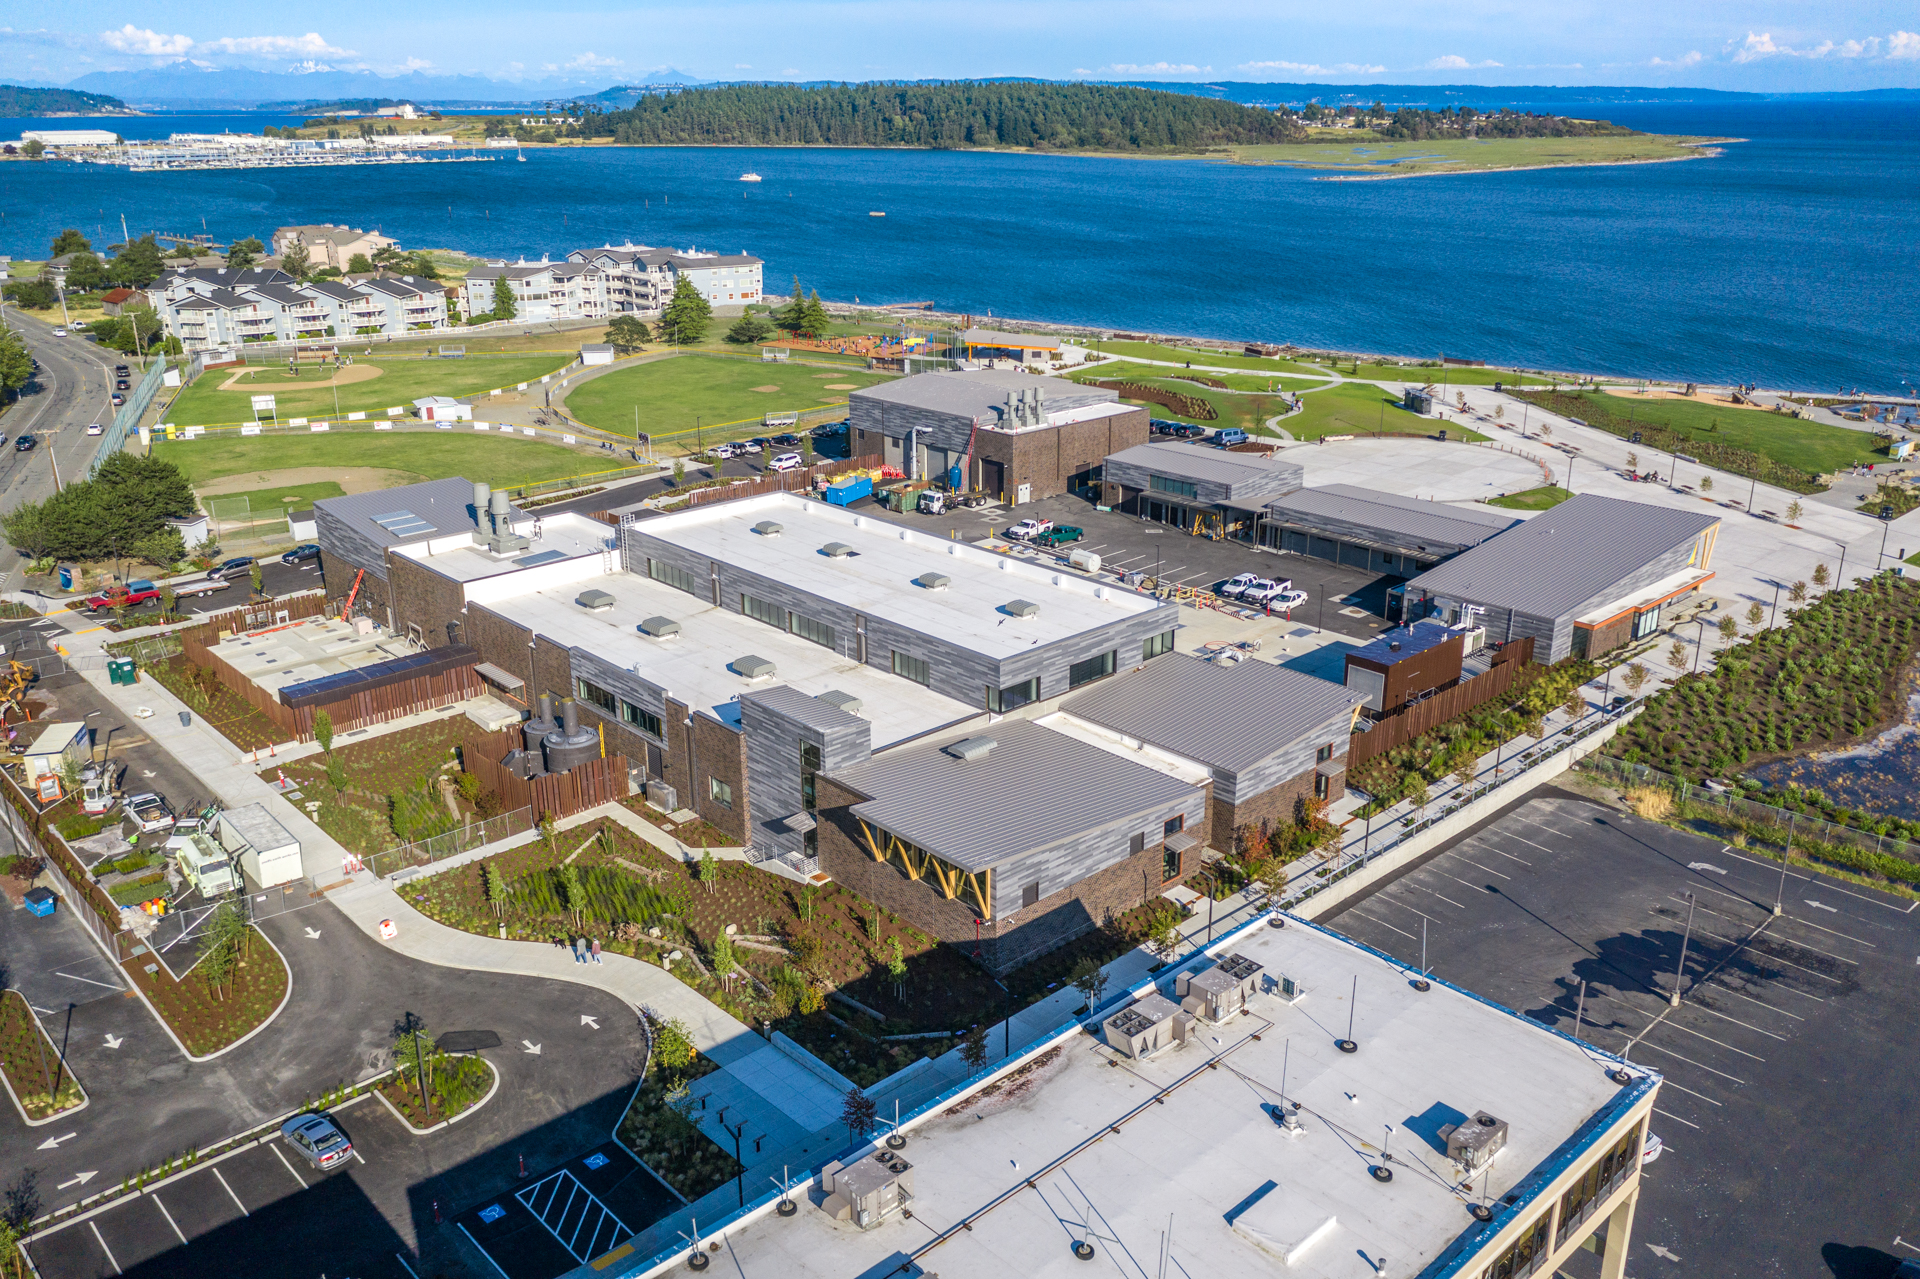 treatment_plant_oak_harbor_aerial_uav_clear_day.jpg